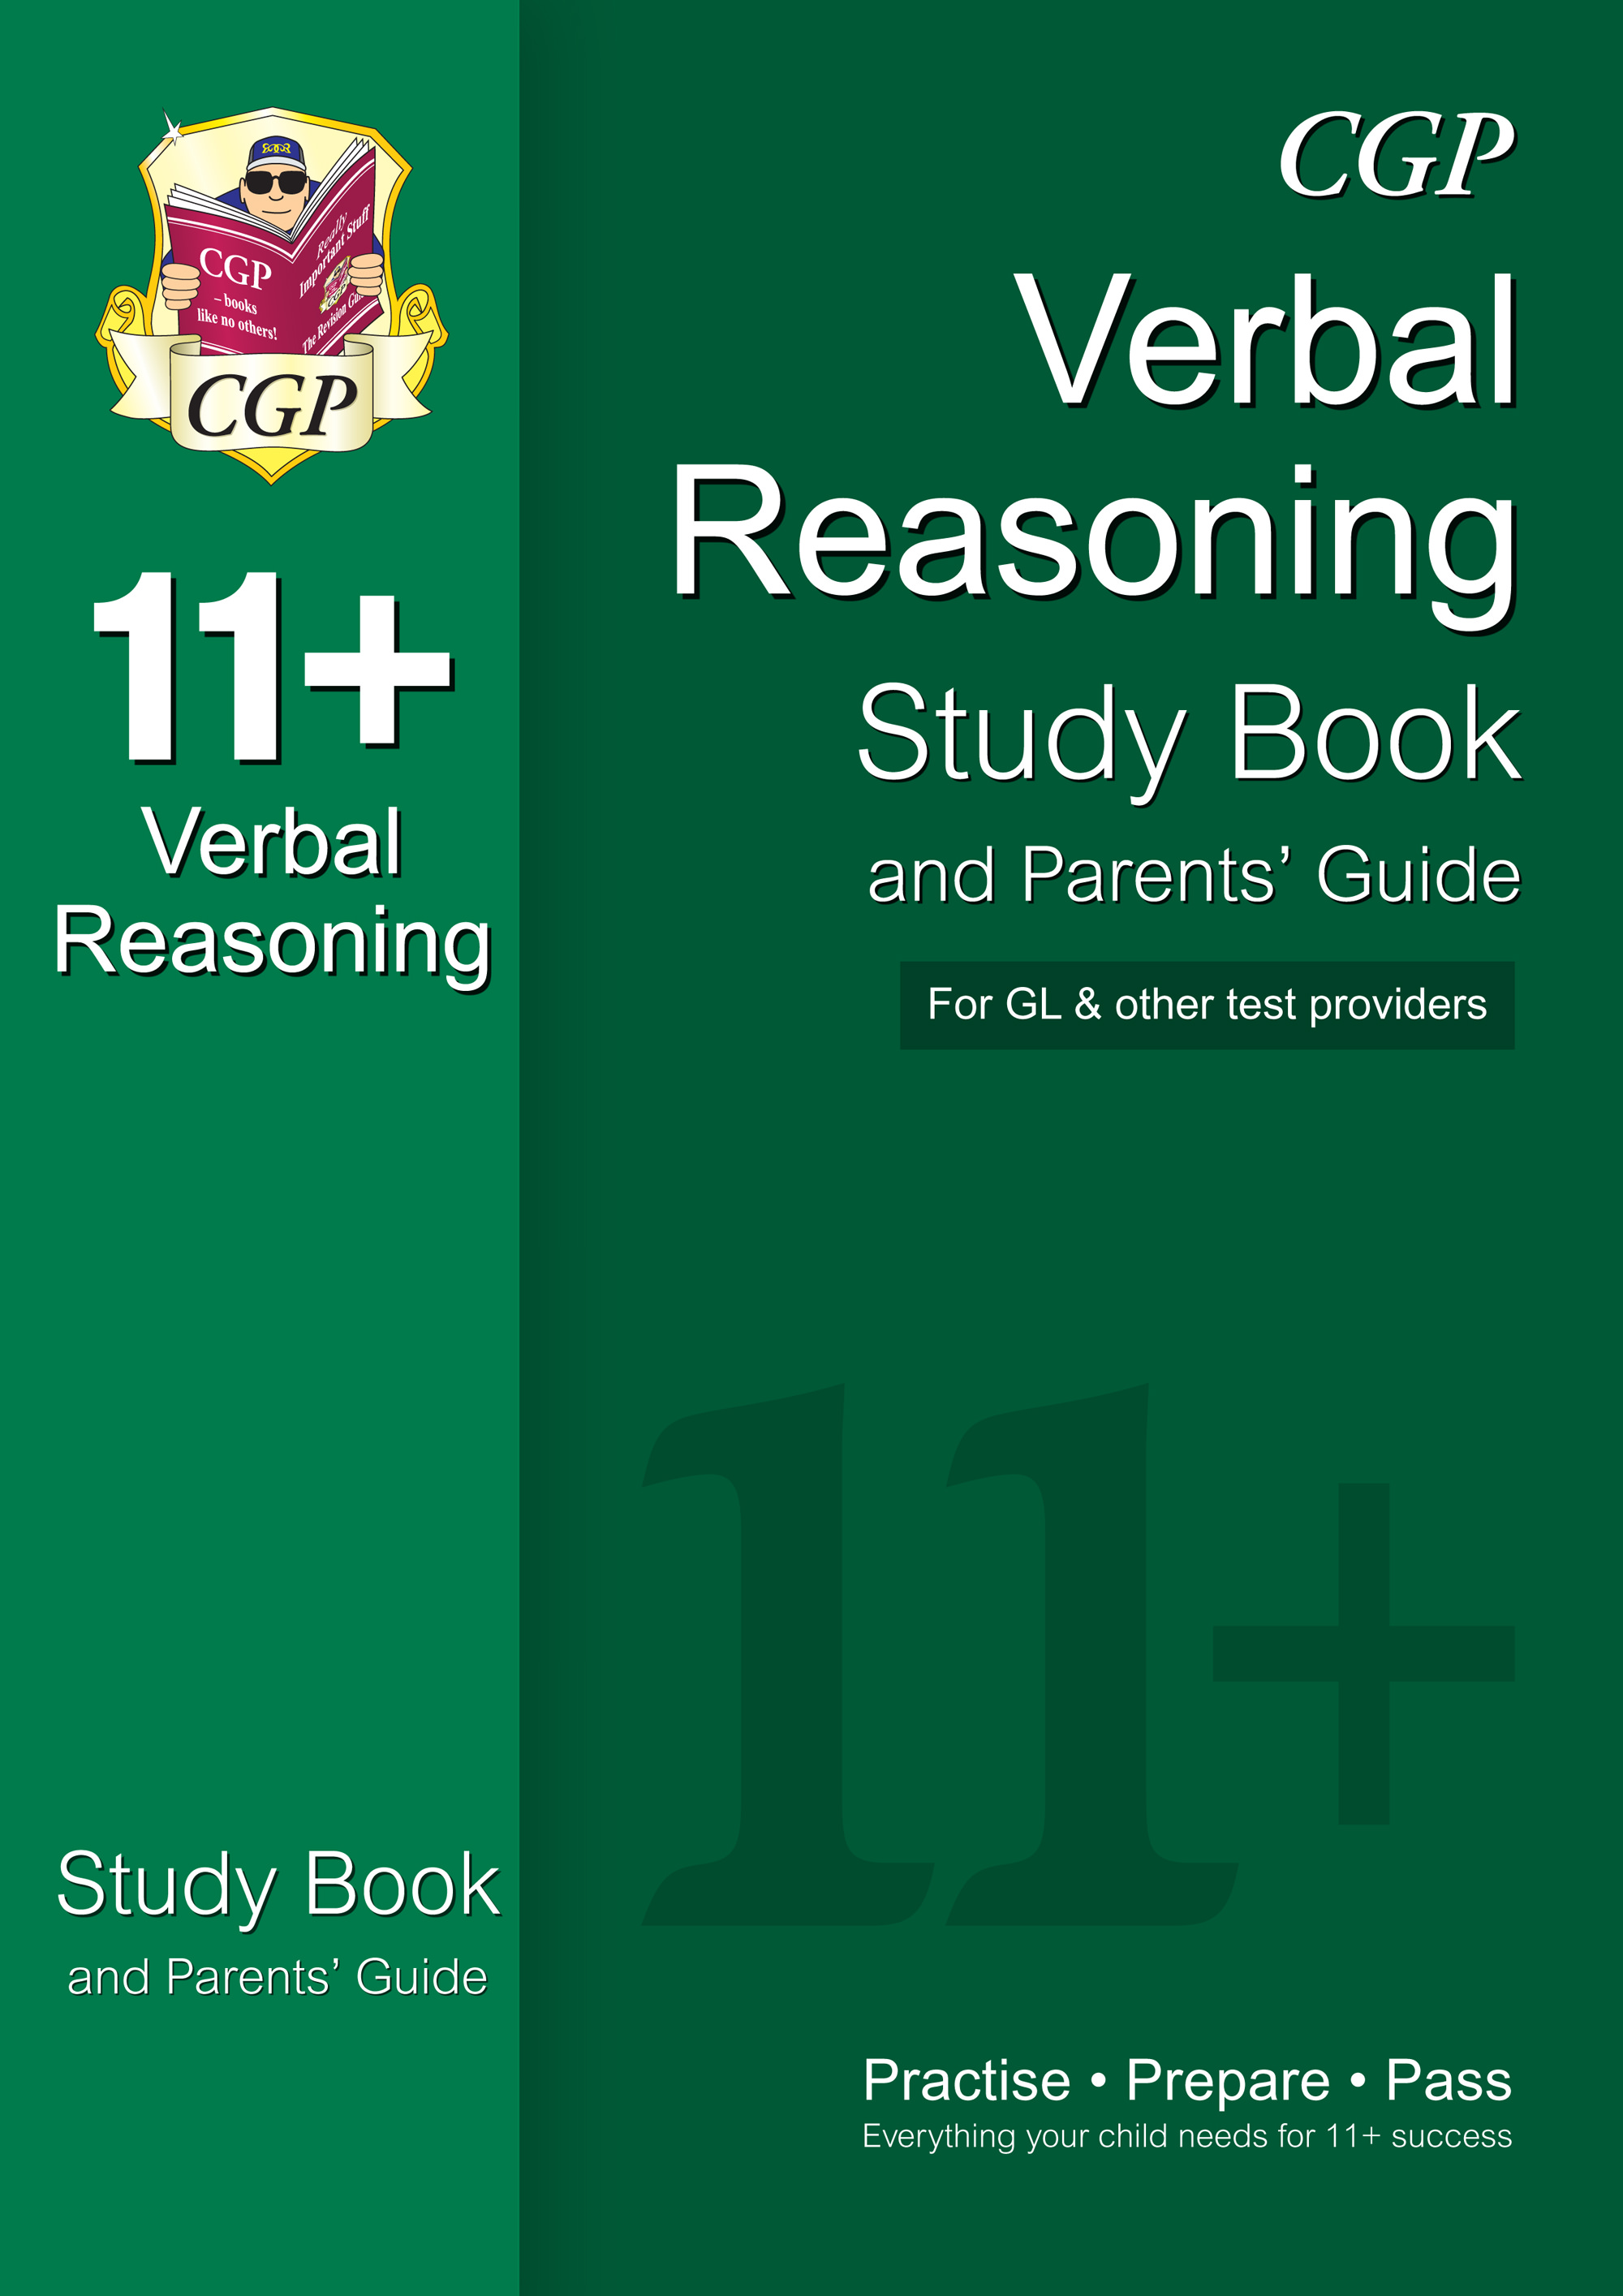 VHRE1 - 11+ Verbal Reasoning Study Book and Parents' Guide (for GL & Other Test Providers)